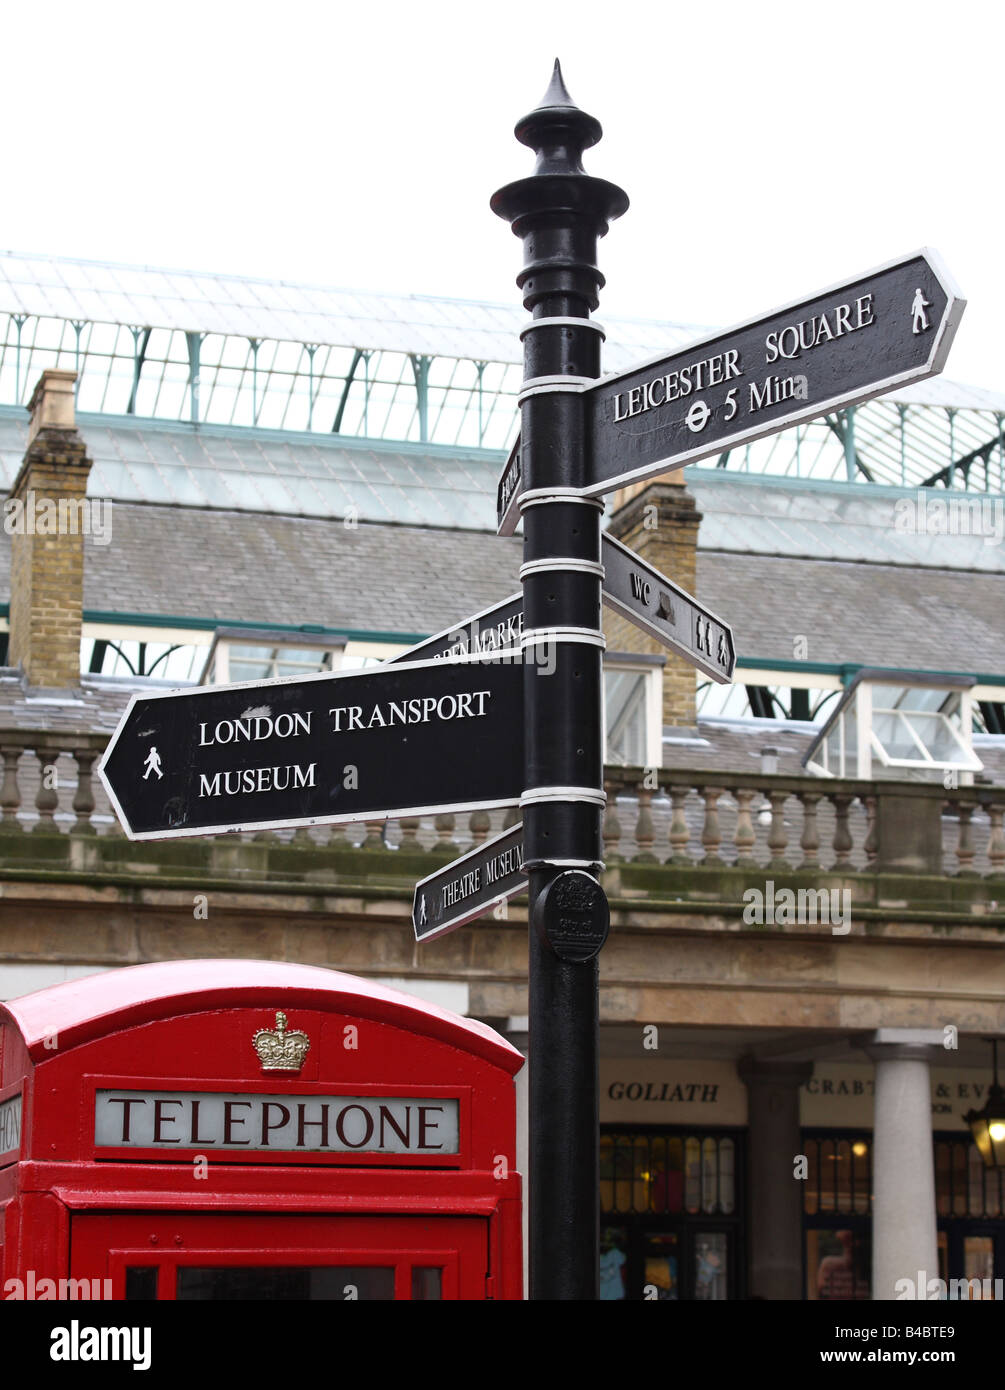 A traditional red telephone box and street sign in Covent Garden, London, England, U.K. - Stock Image